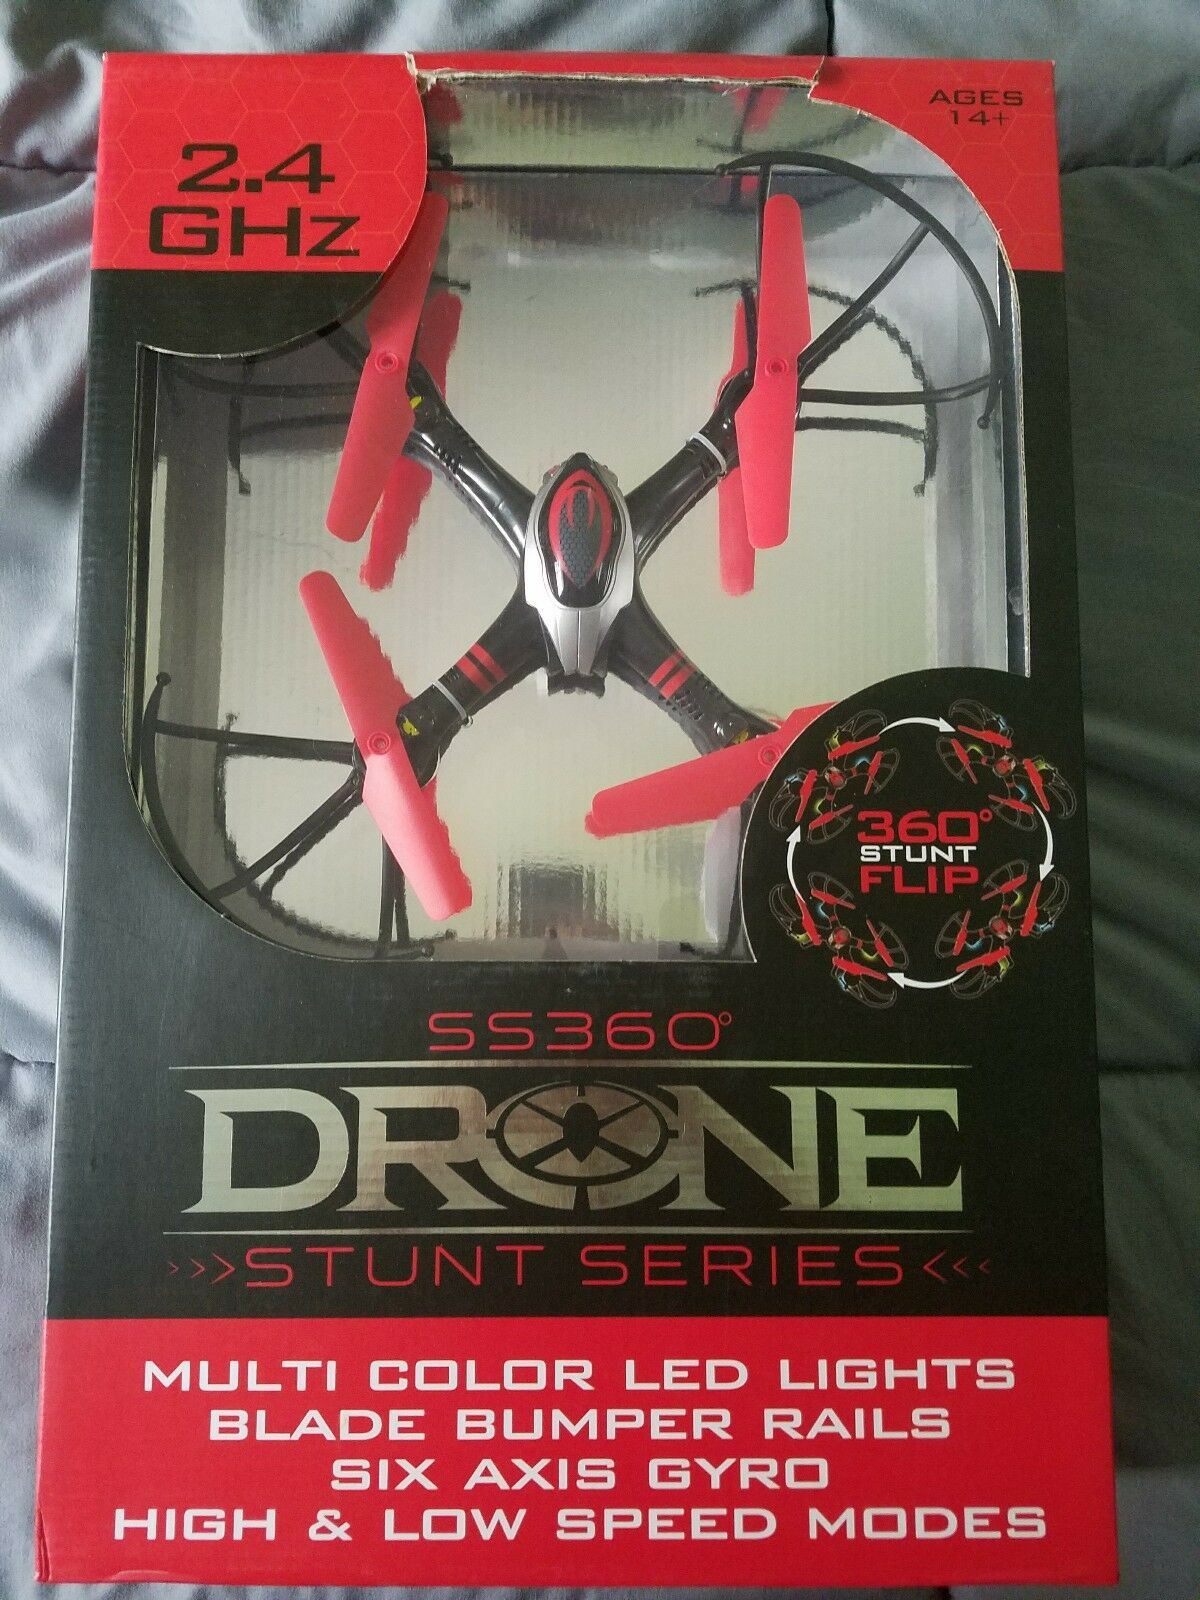 SS360 Stunt Series Drone 2.4 GHz COMPLETE    NEVER USED, UNOPENED IN BOX